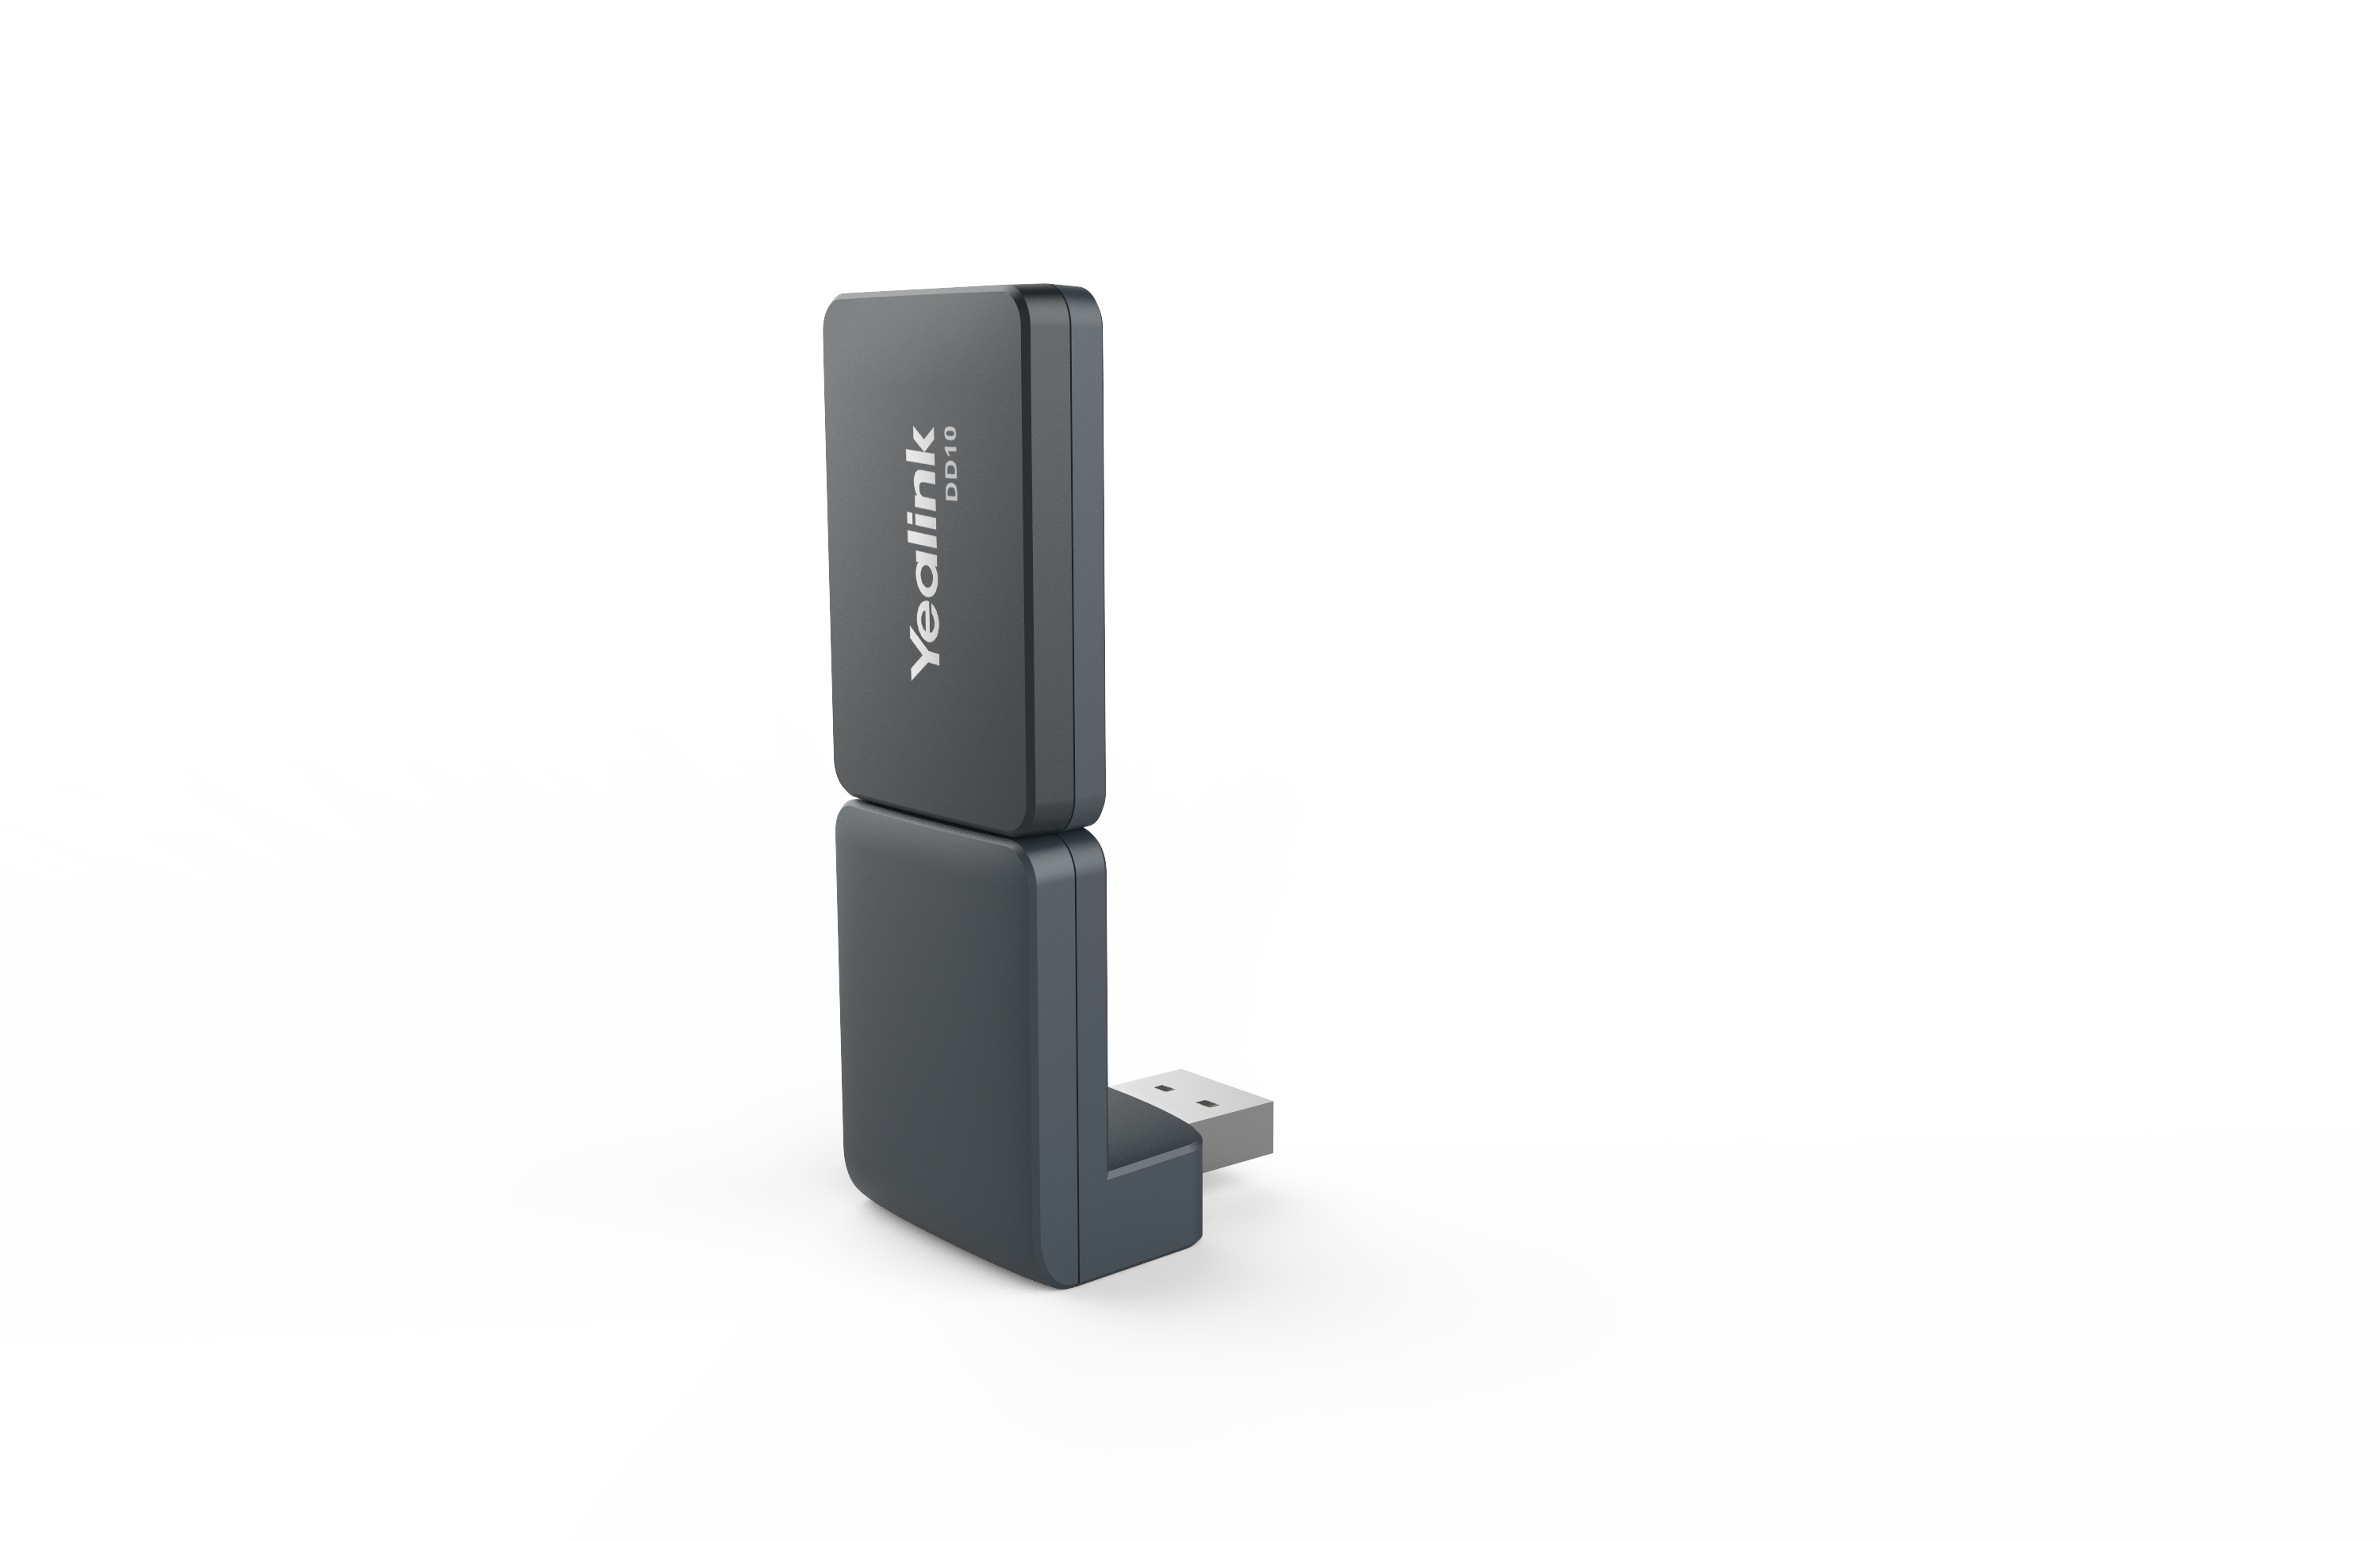 Yealink DECT USB Dongle DD10K